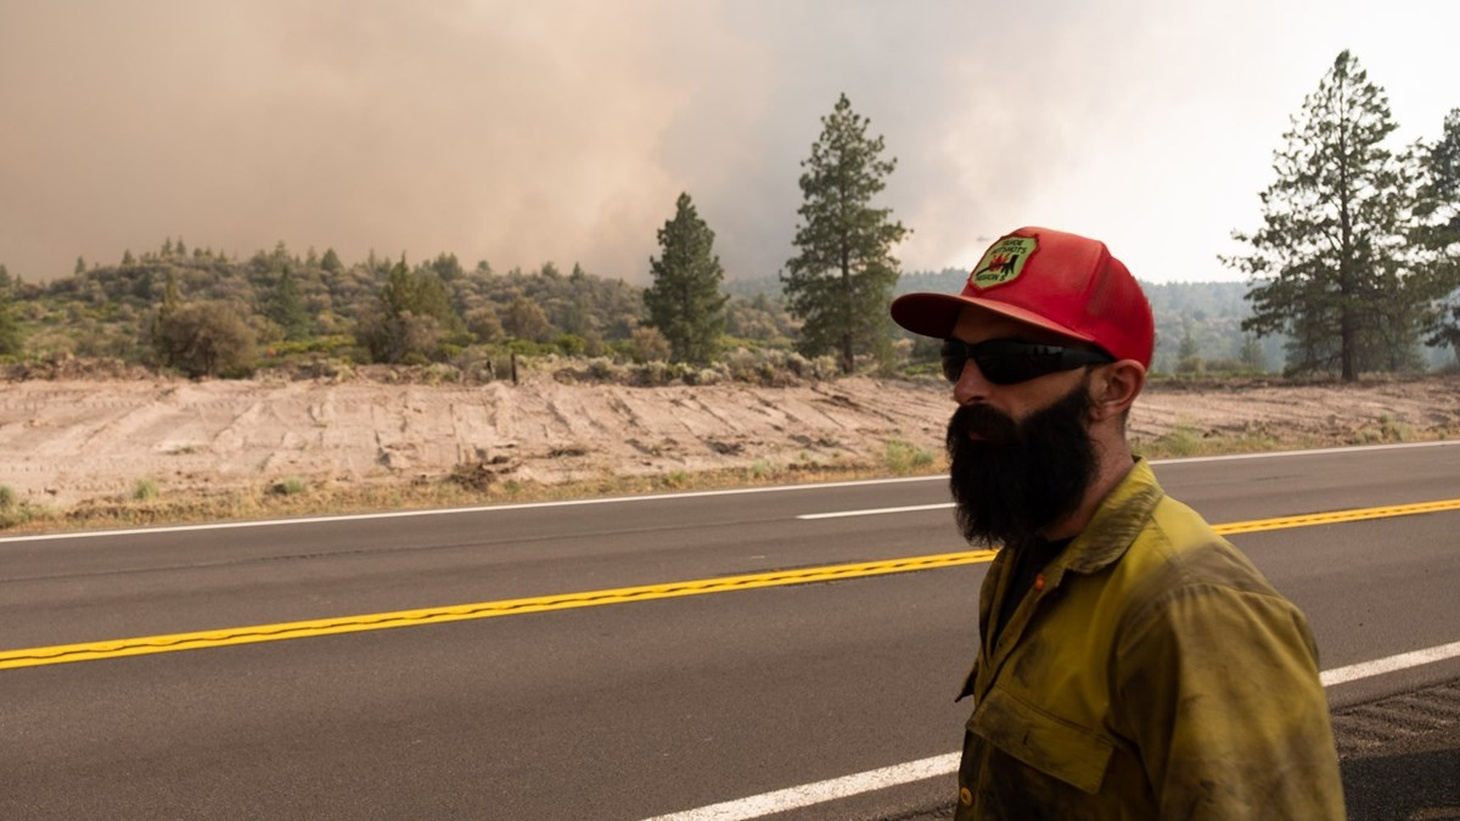 Firefighter Cody Hood watches the Lava Fire burn on a break Thursday, July 1, 2021. He has been deployed for his first-ever fire with Tahoe Hotshots, a federal firefighter crew and has been working for several days in difficult terrain.